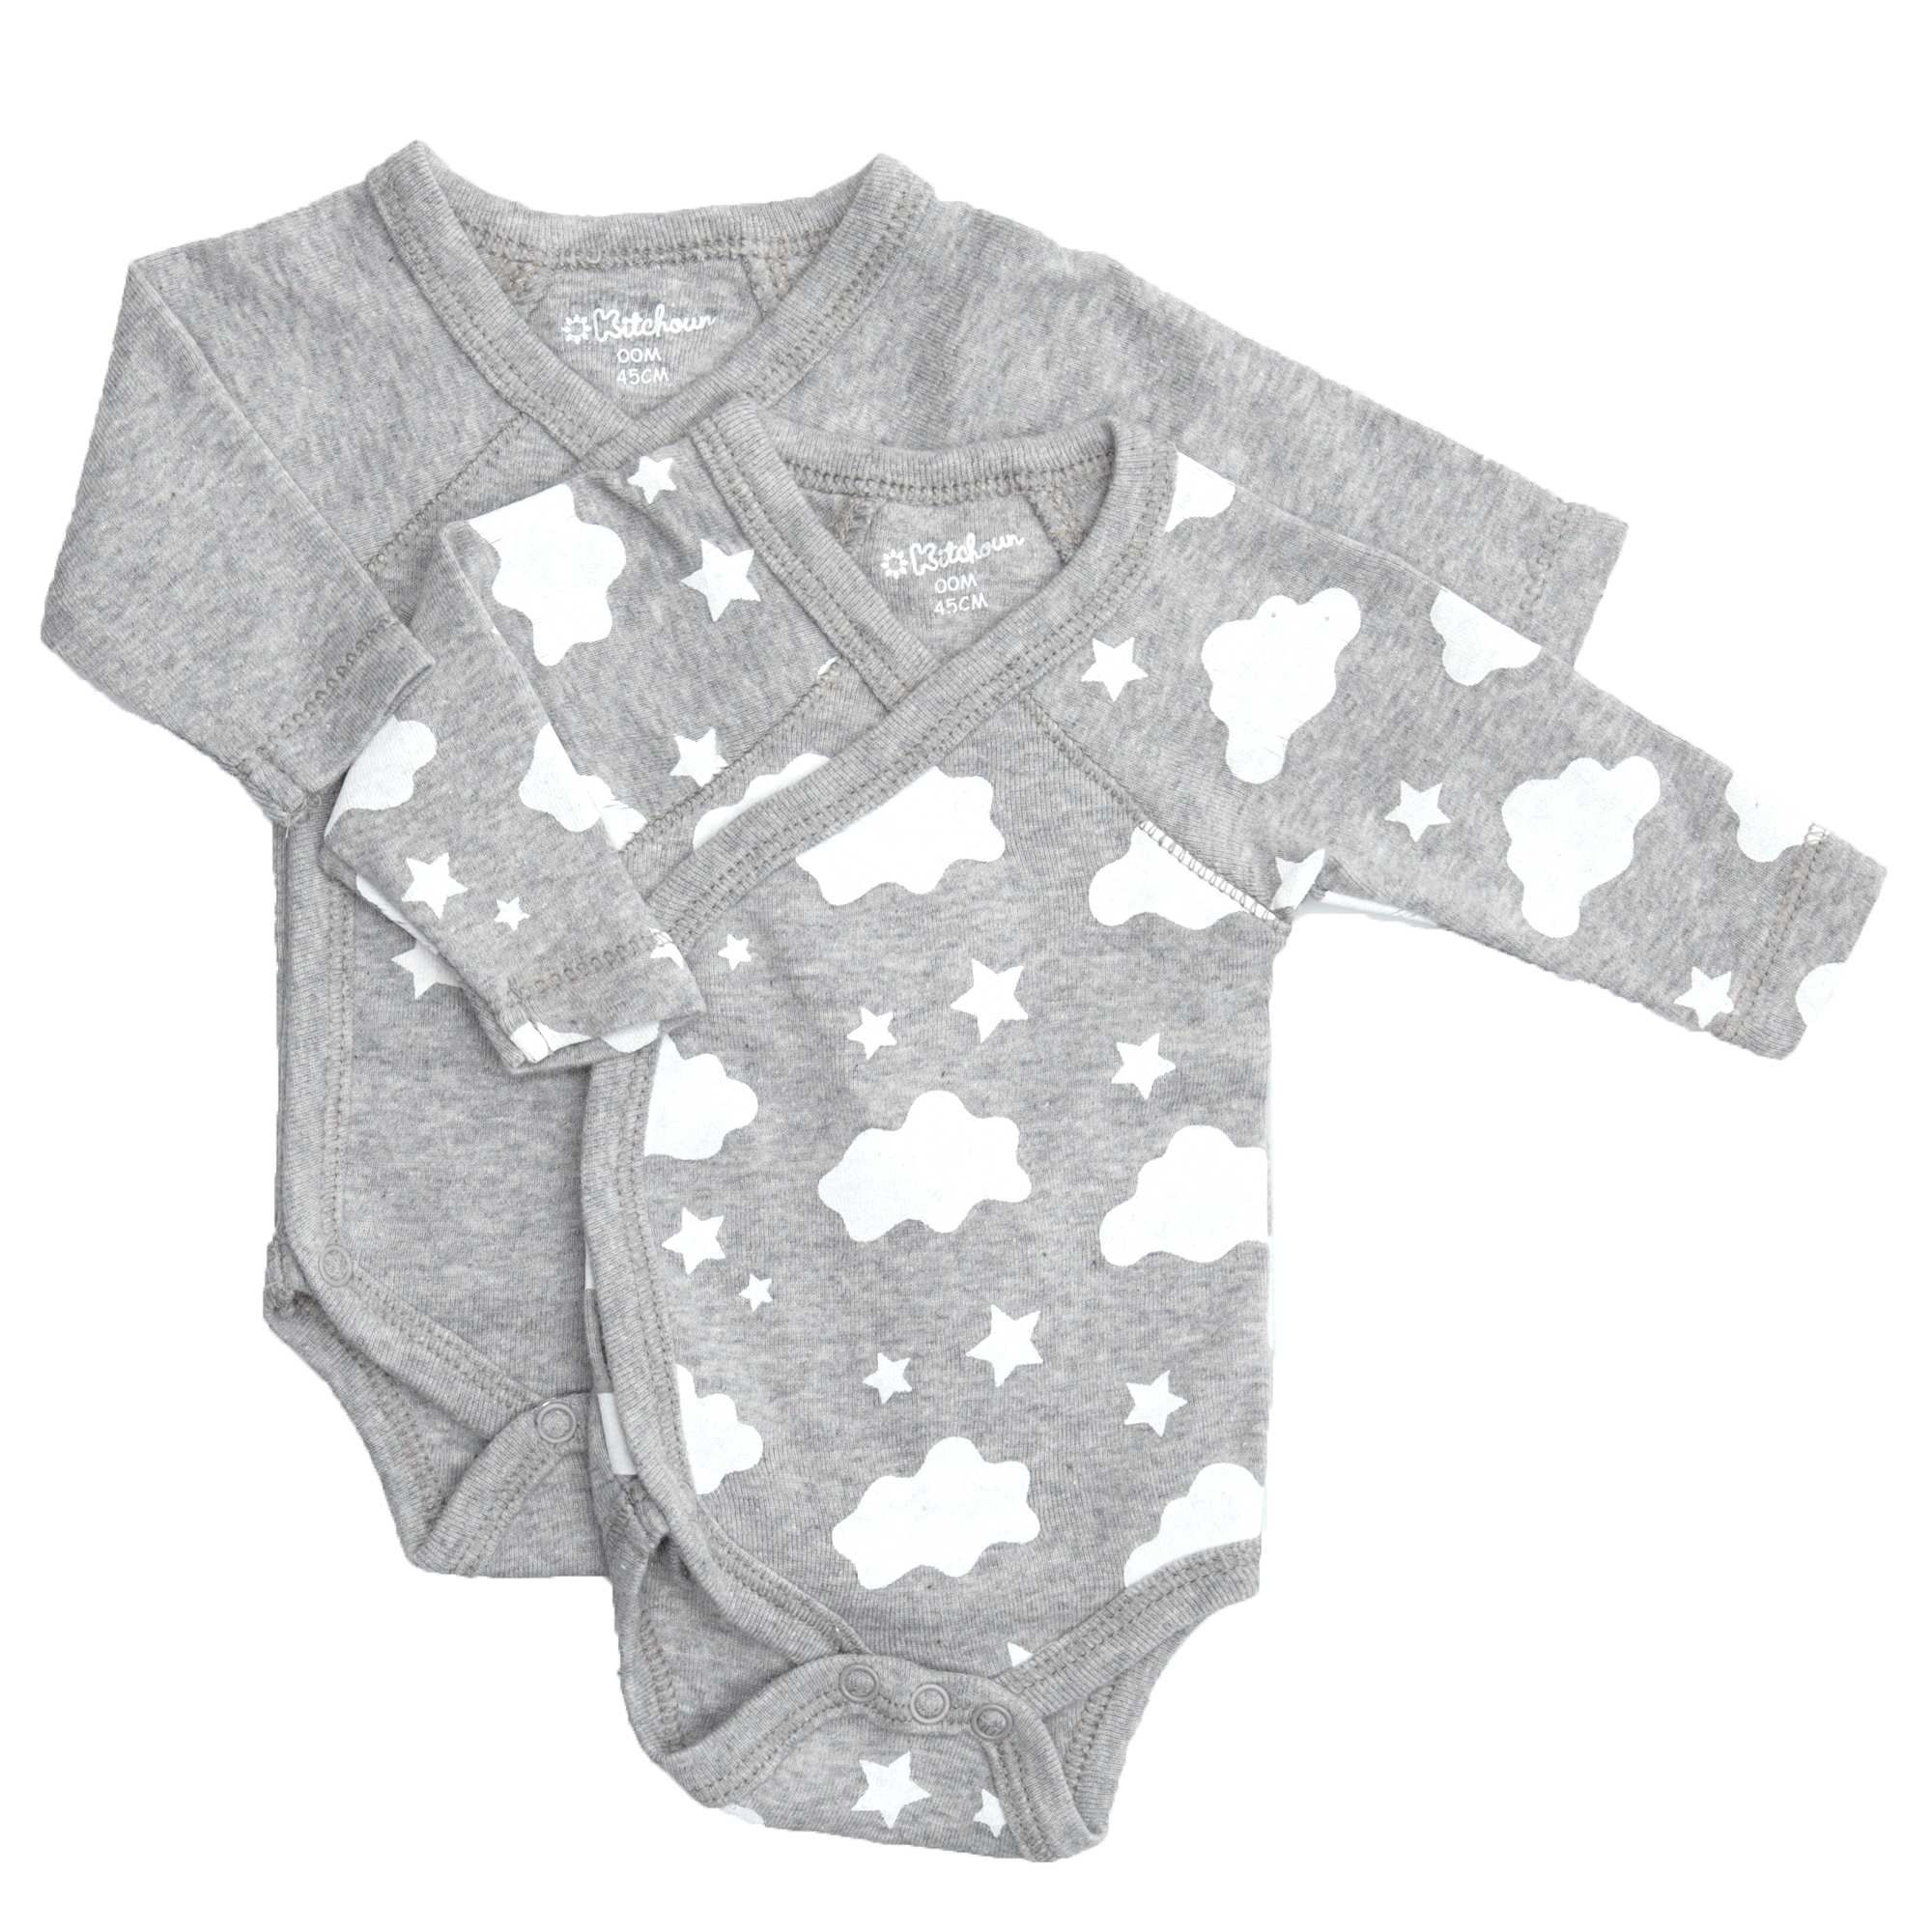 Pack of 2 organic cotton crossover bodysuits MIXED Girls 0 to 18